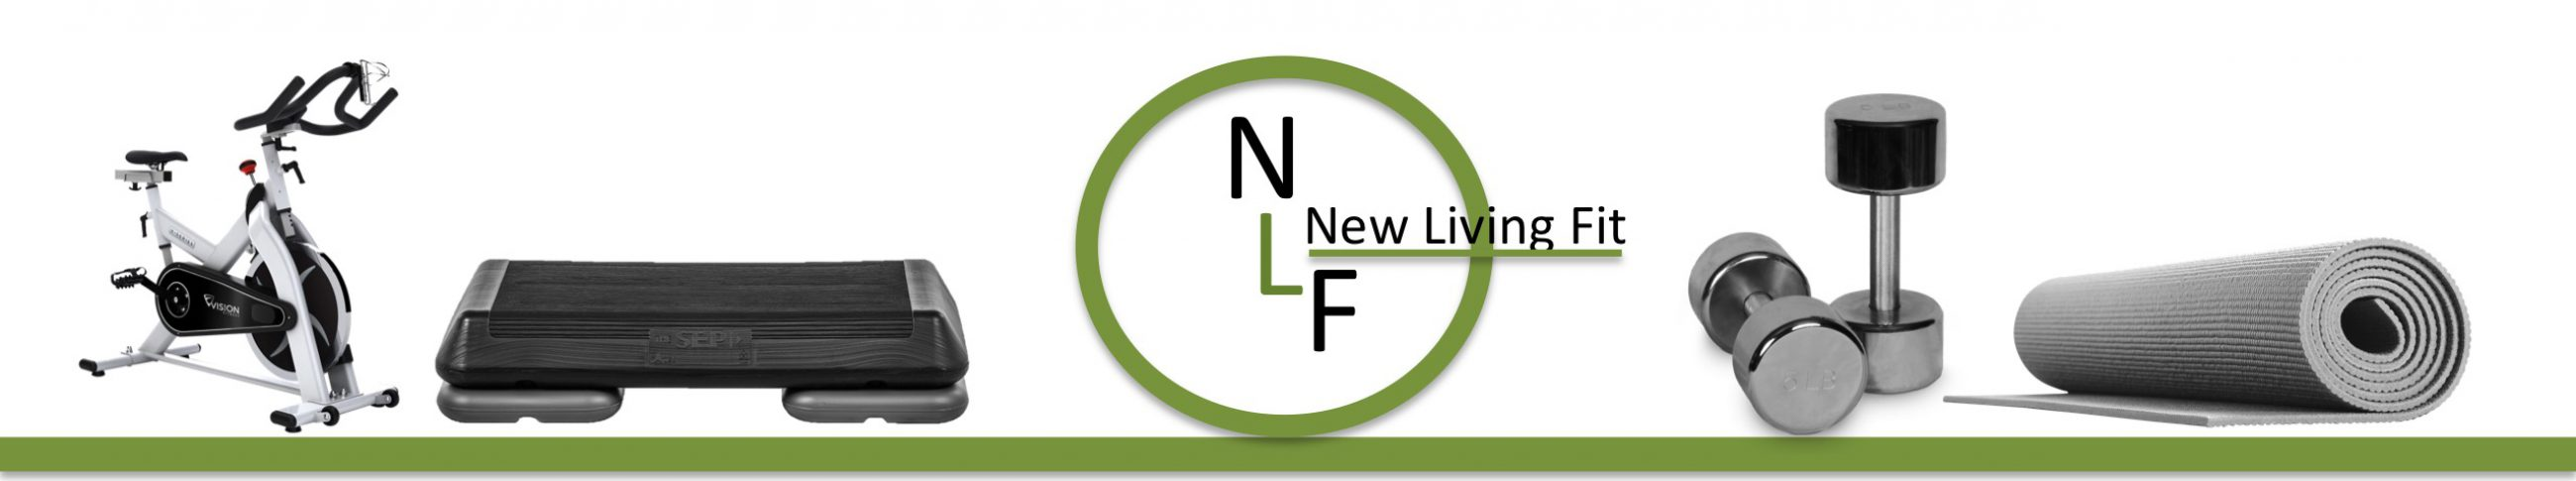 New Living Fit